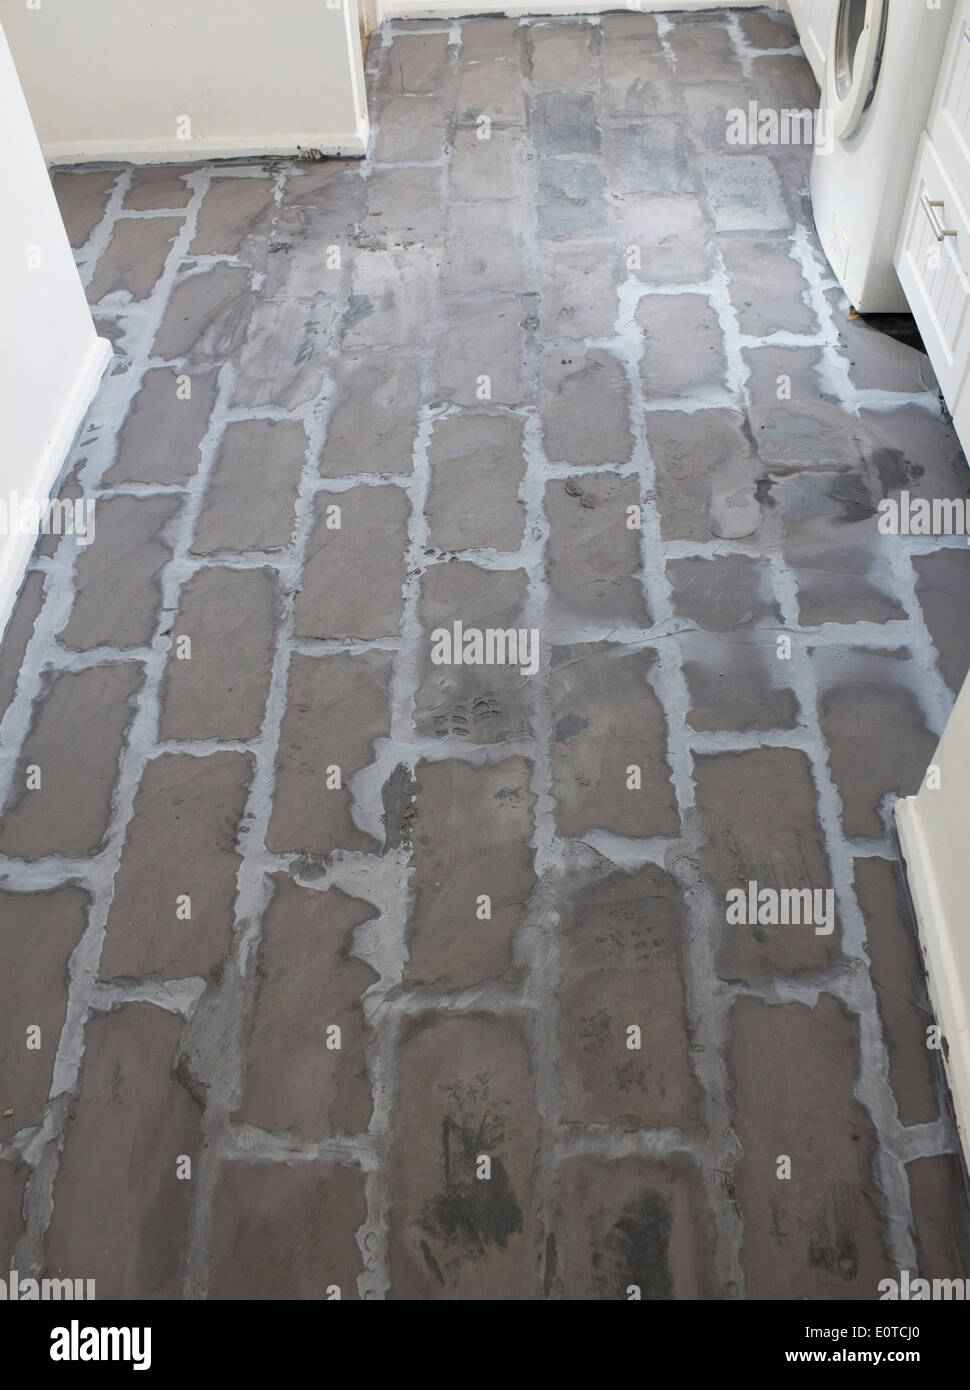 https www alamy com bad diy bad floor tiling job with lots of excess grout grouting between image69378232 html